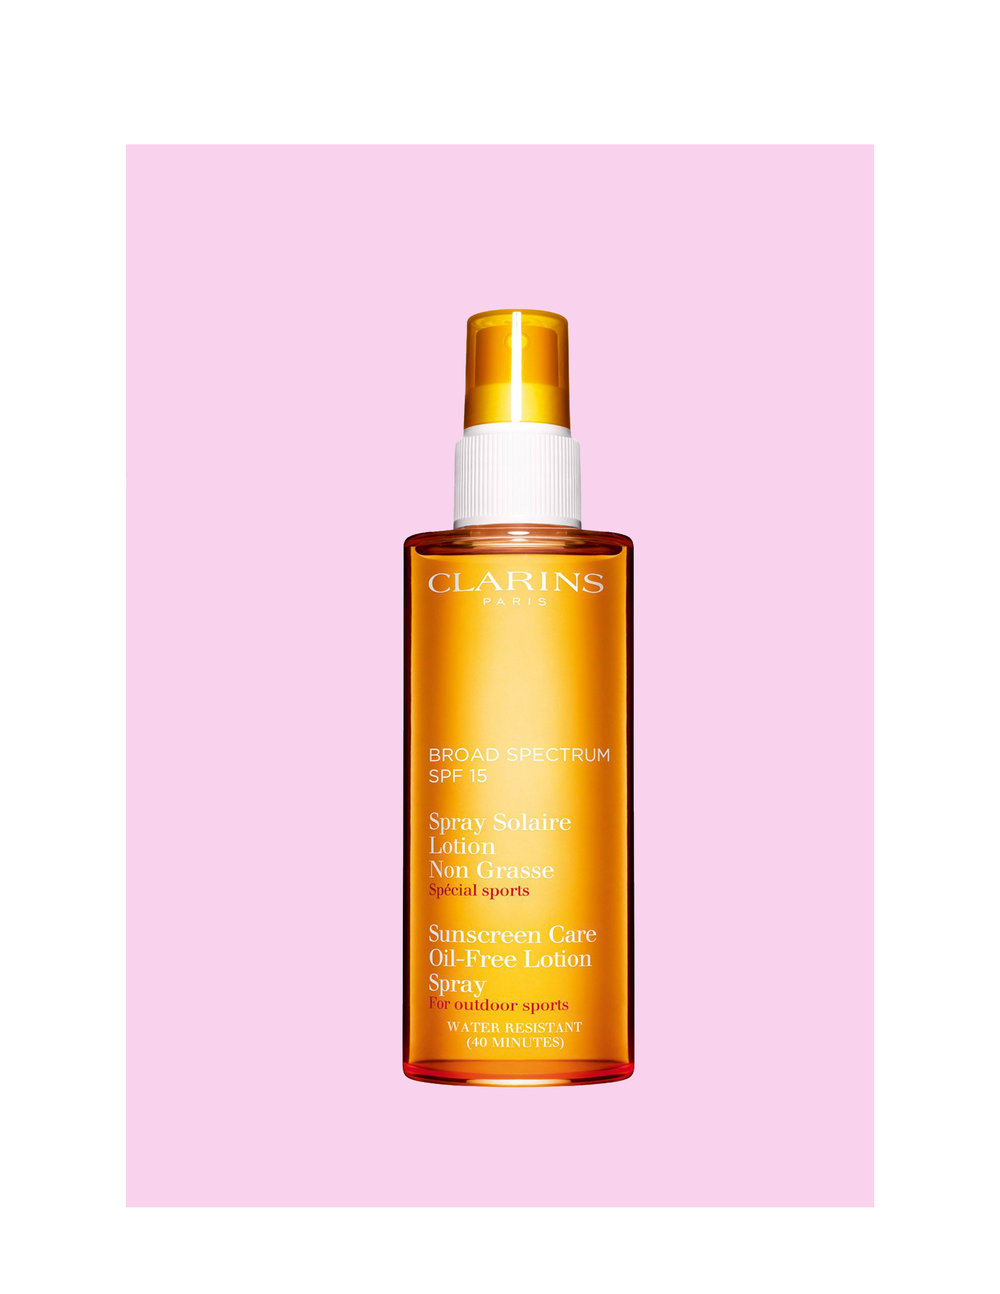 Recommended by: Kyra Peterson  Skin Type: Oily/Reactive  SPF: 50 - Overall Thoughts: